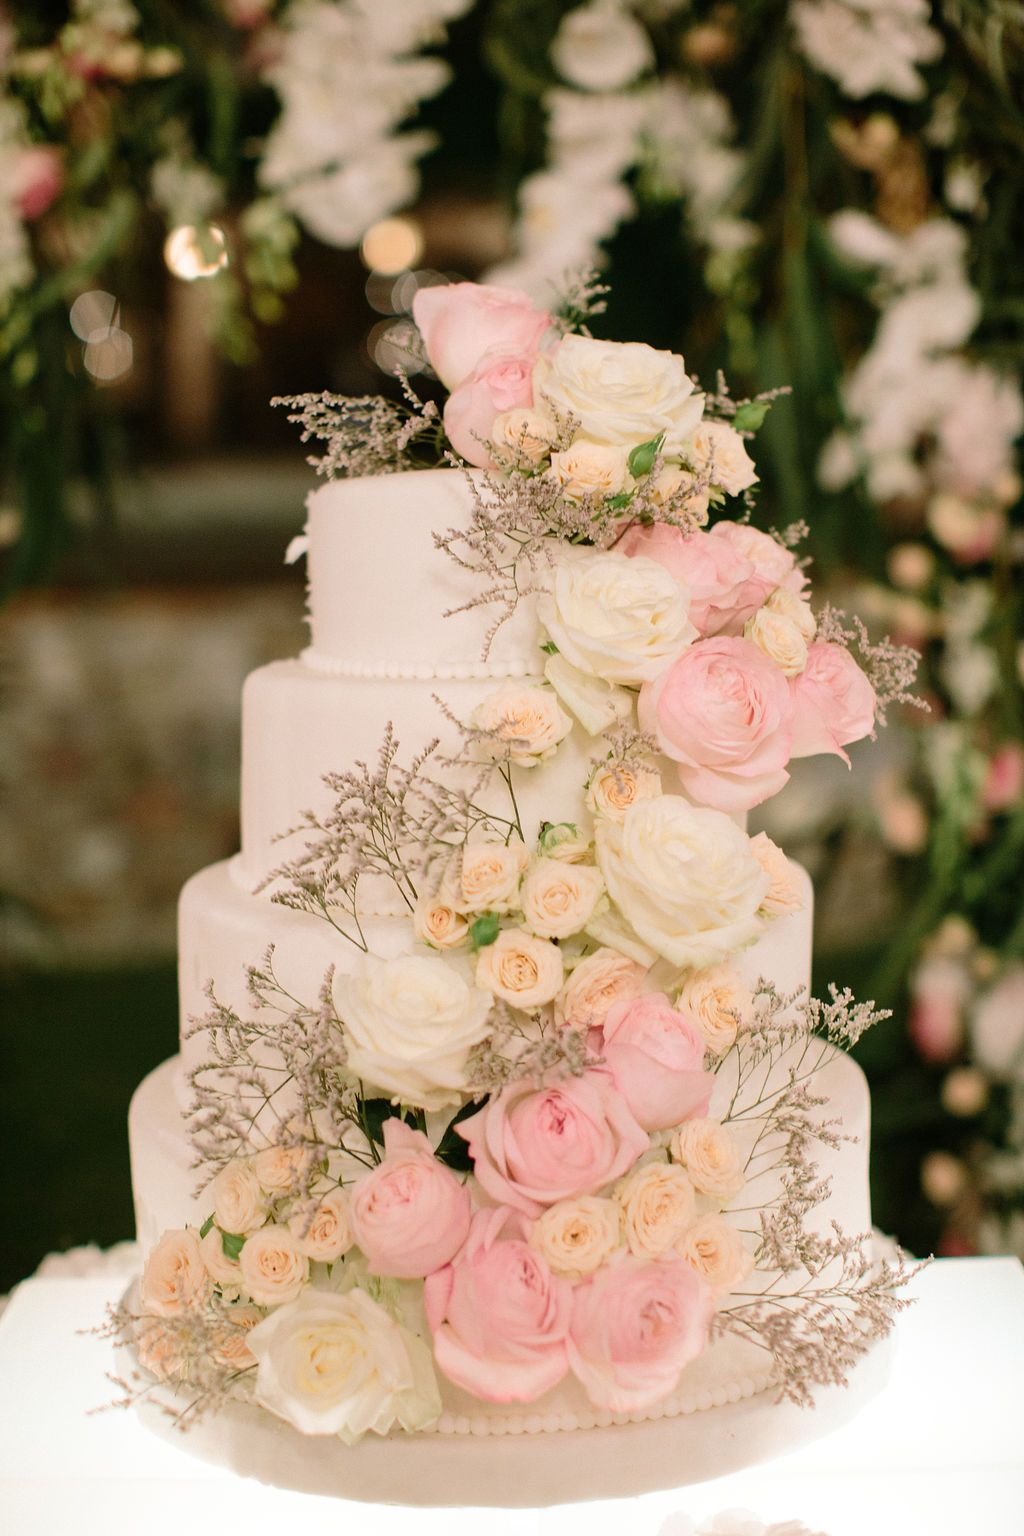 Lucury cake adorned with flowers